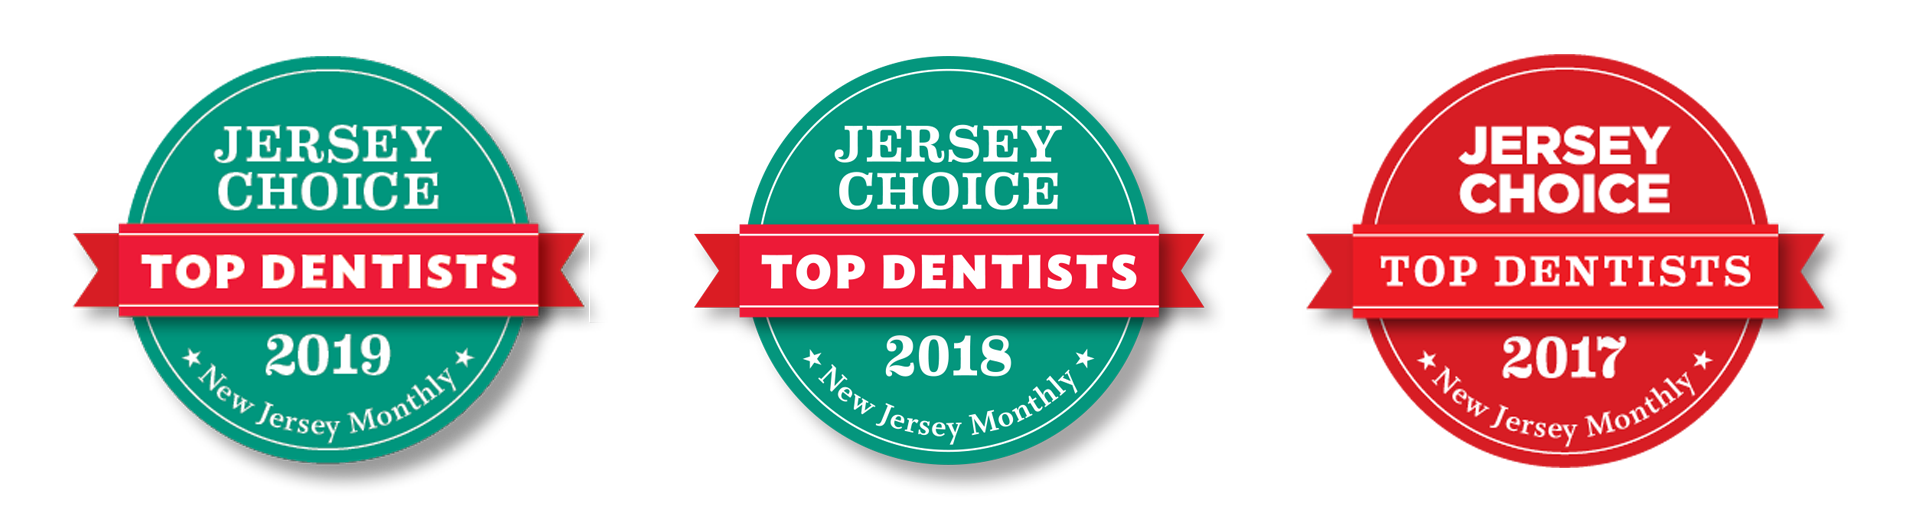 NJ Top Dentist 2017-2019 (1).png